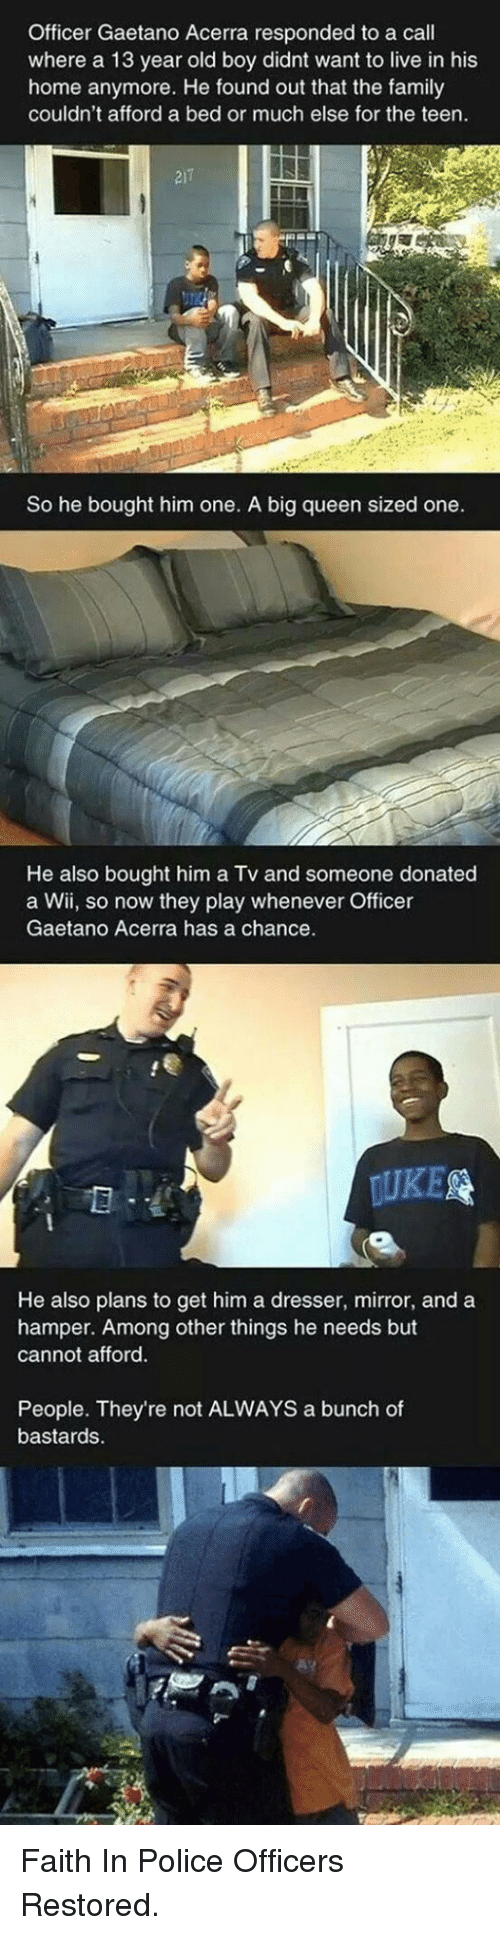 Family, Police, and Queen: Officer Gaetano Acerra responded to a call  where a 13 year old boy didnt want to live in his  home anymore. He found out that the family  couldn't afford a bed or much else for the teen.  21  So he bought him one. A big queen sized one  He also bought him a Tv and someone donated  a Wii, so now they play whenever Officer  Gaetano Acerra has a chance  UKE  He also plans to get him a dresser, mirror, and a  hamper. Among other things he needs but  cannot afford  People. They're not ALWAYS a bunch of  bastards <p>Faith In Police Officers Restored.</p>